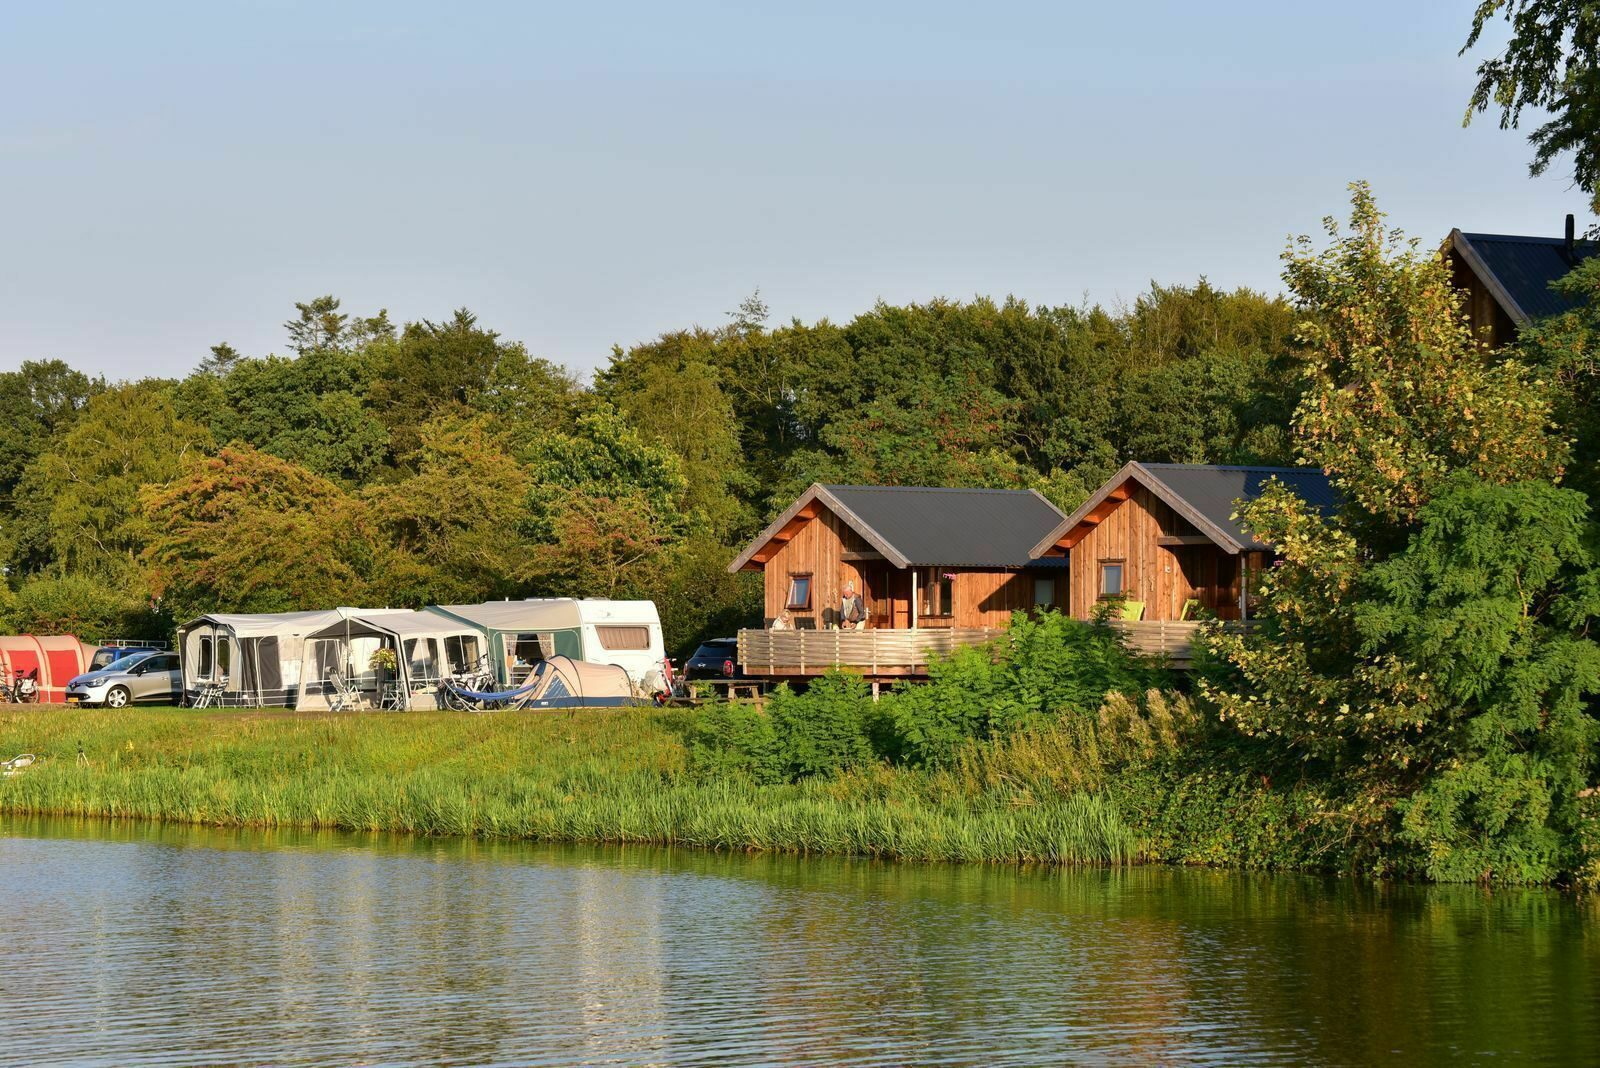 Accommodation on campsite with swimming pool